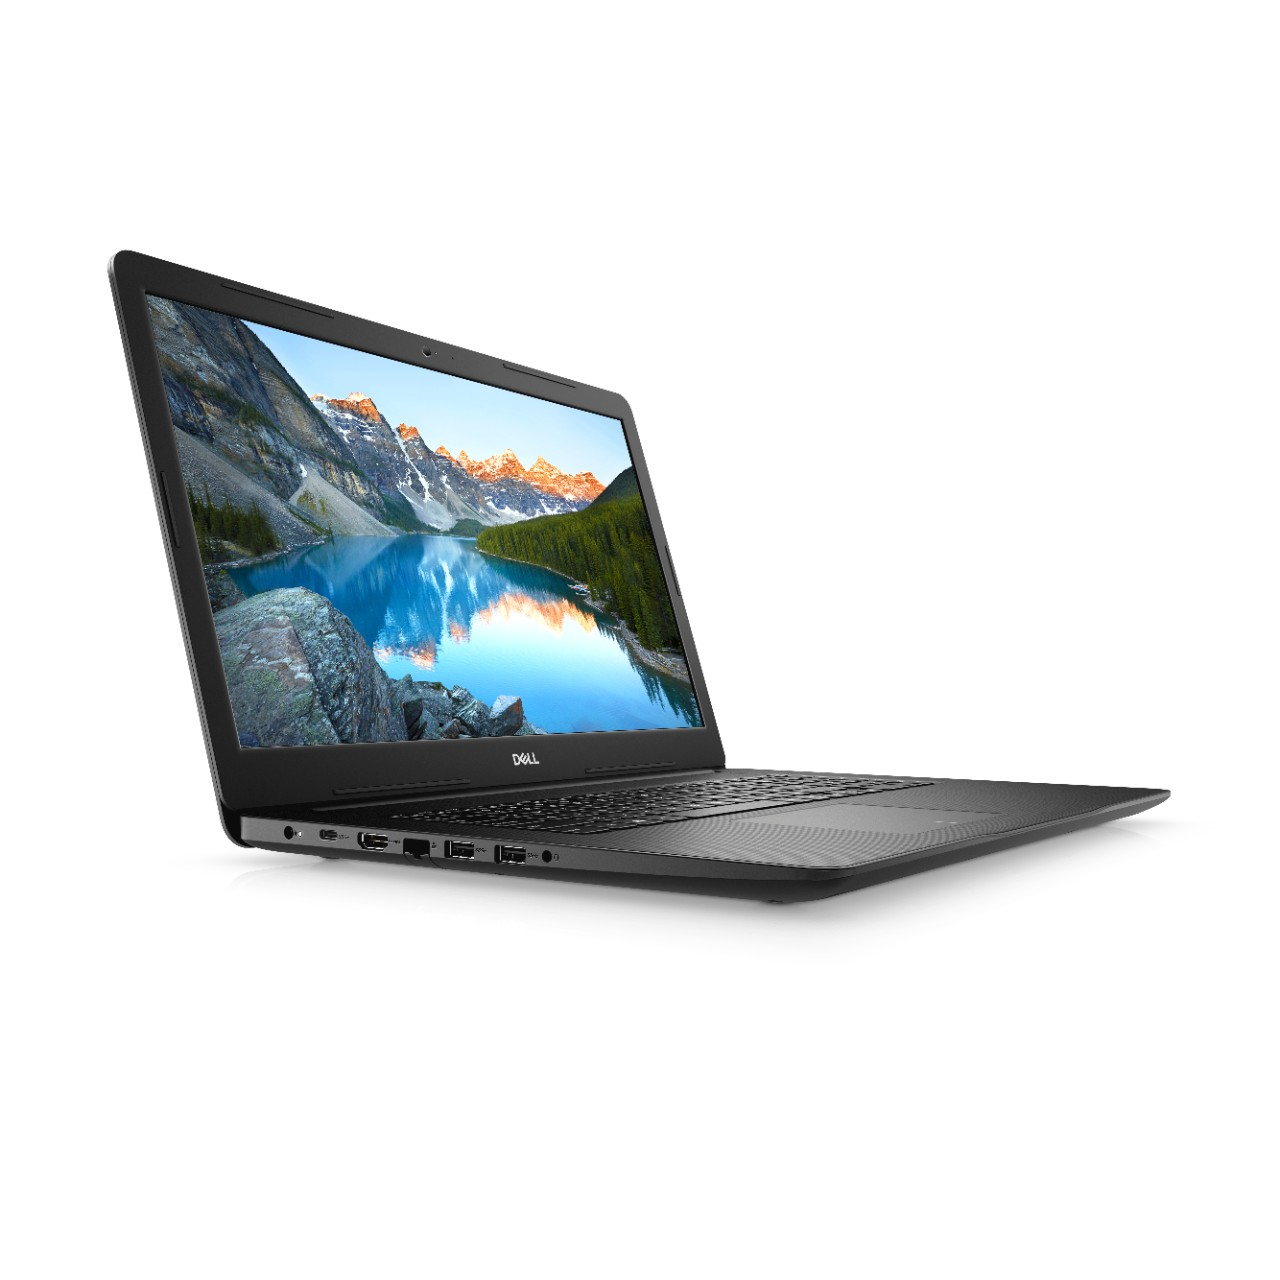 "Laptop 17.3"" DELL Inspiron 17 3000 (3793) / Core i3 / 4GB / 1TB / DVDRW / Black"